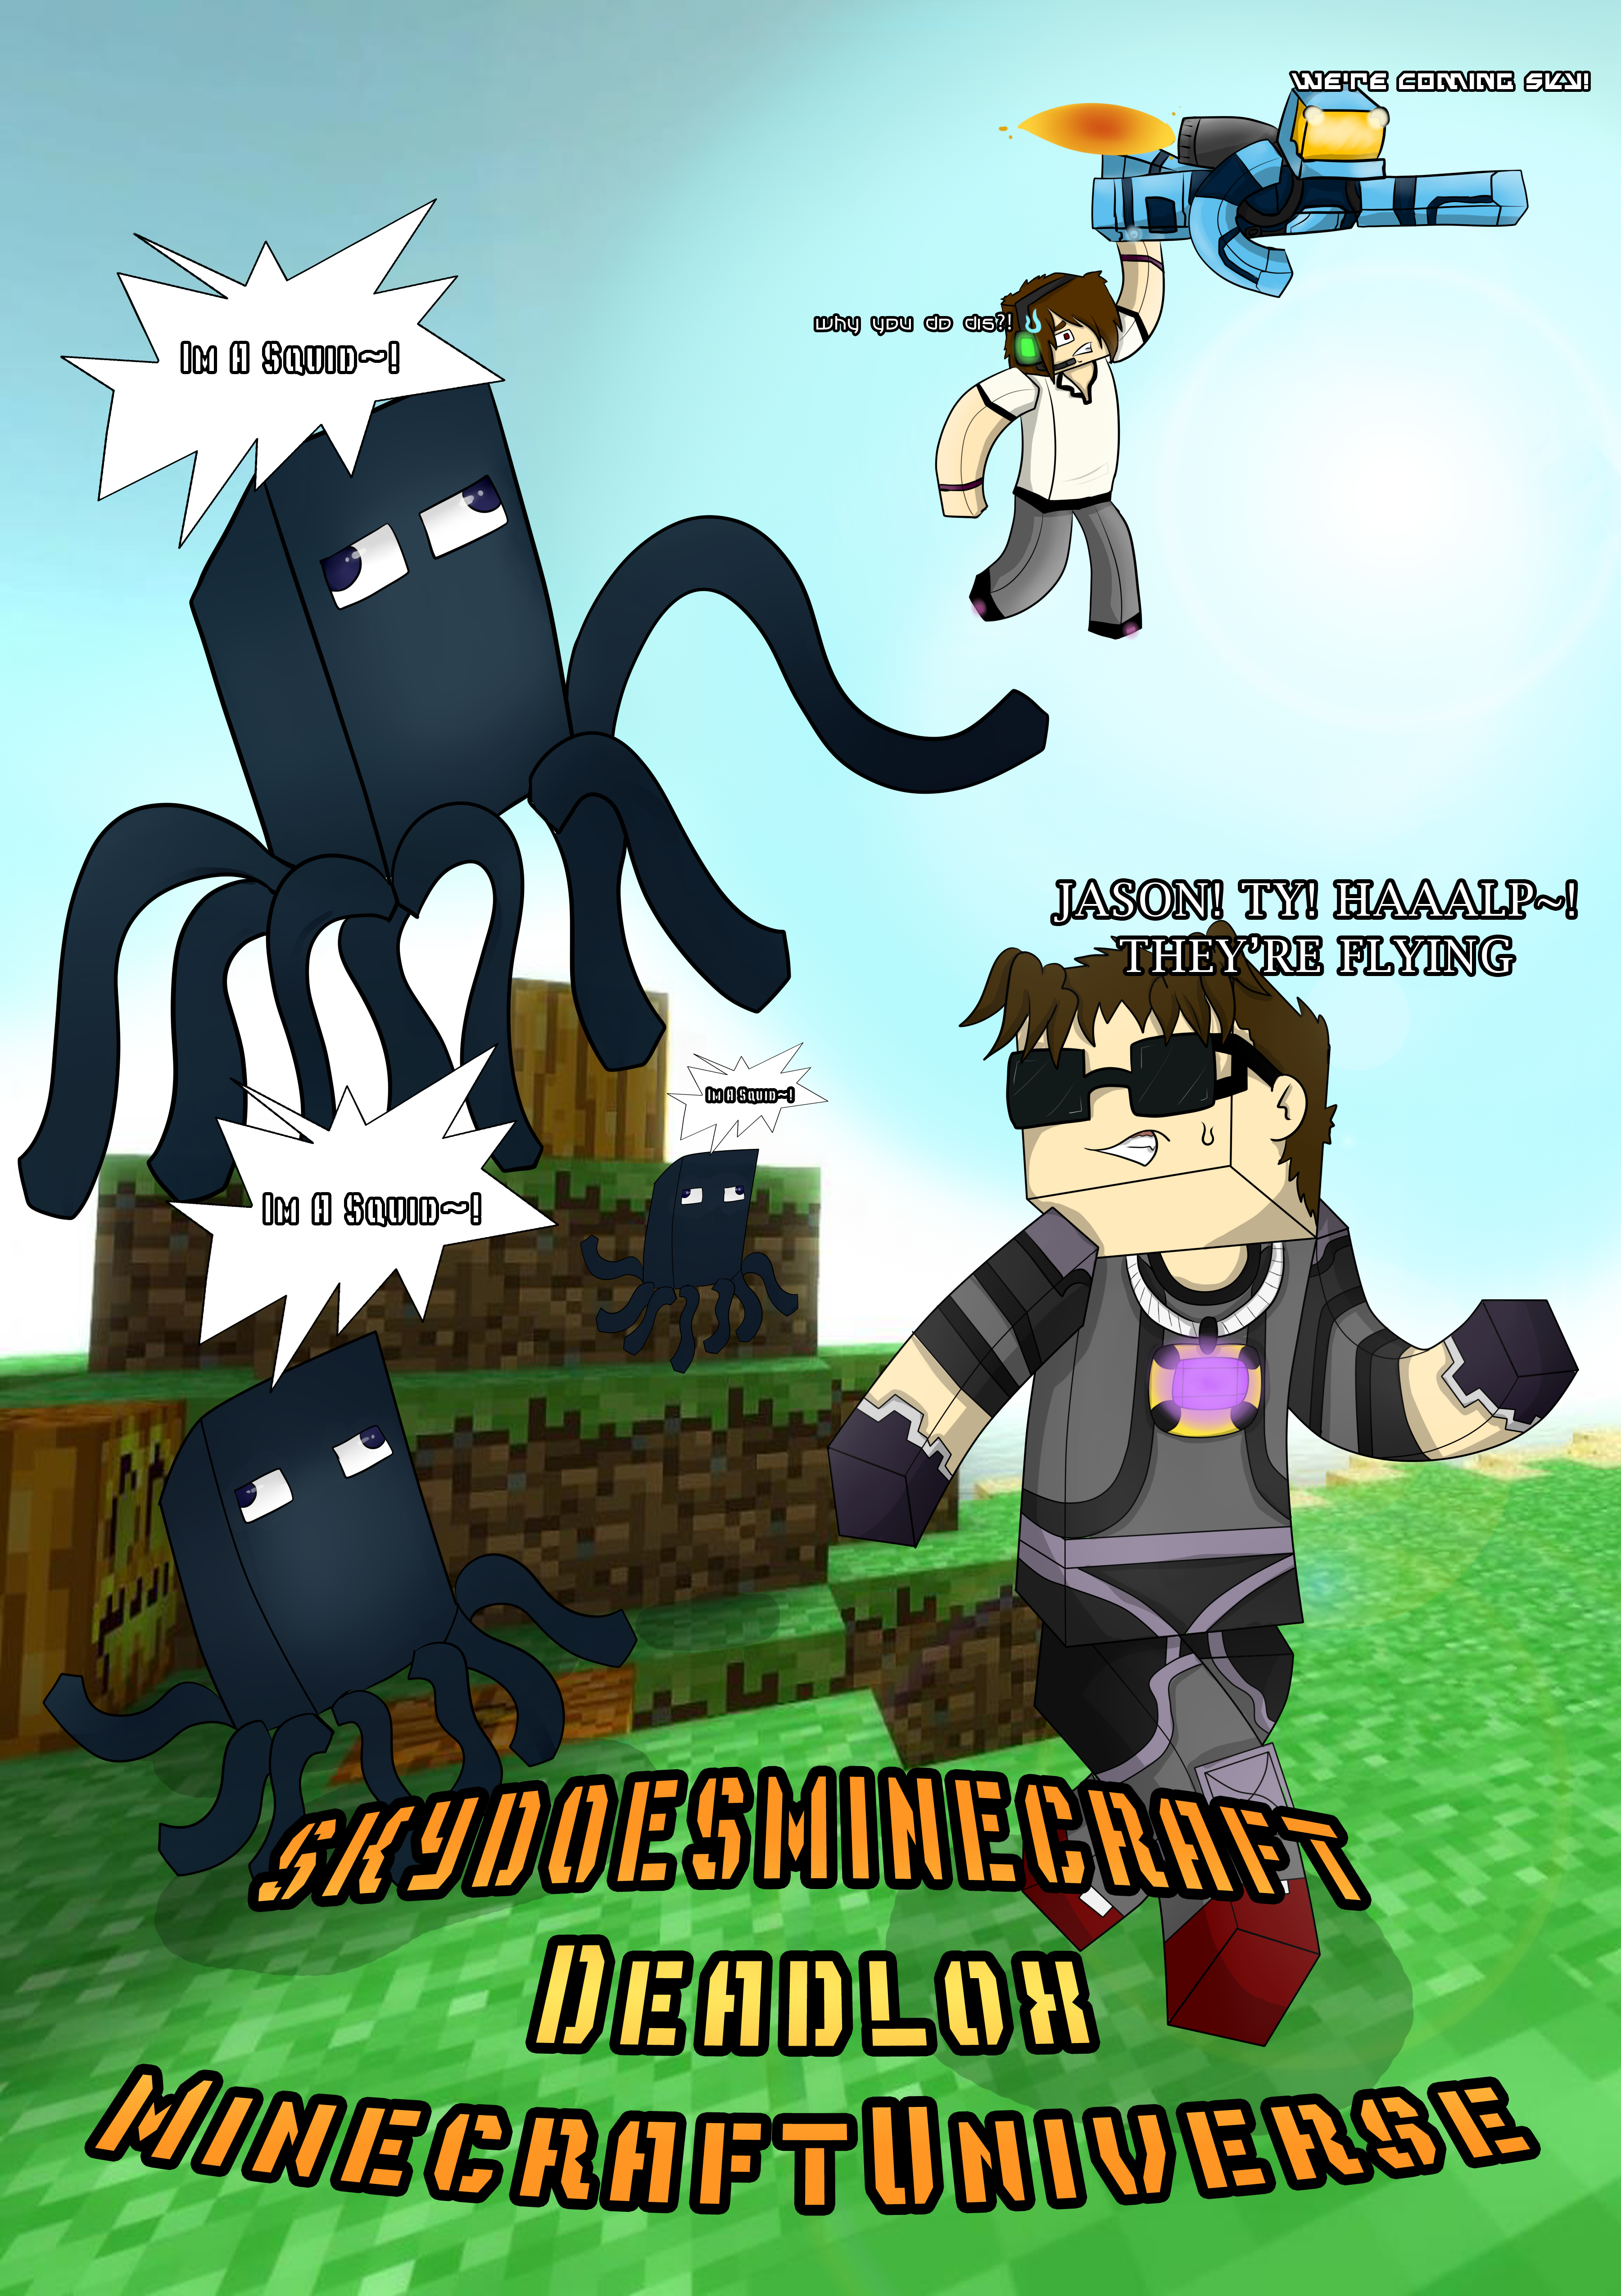 skydoesminecraft minecraftuniverse and deadlox by